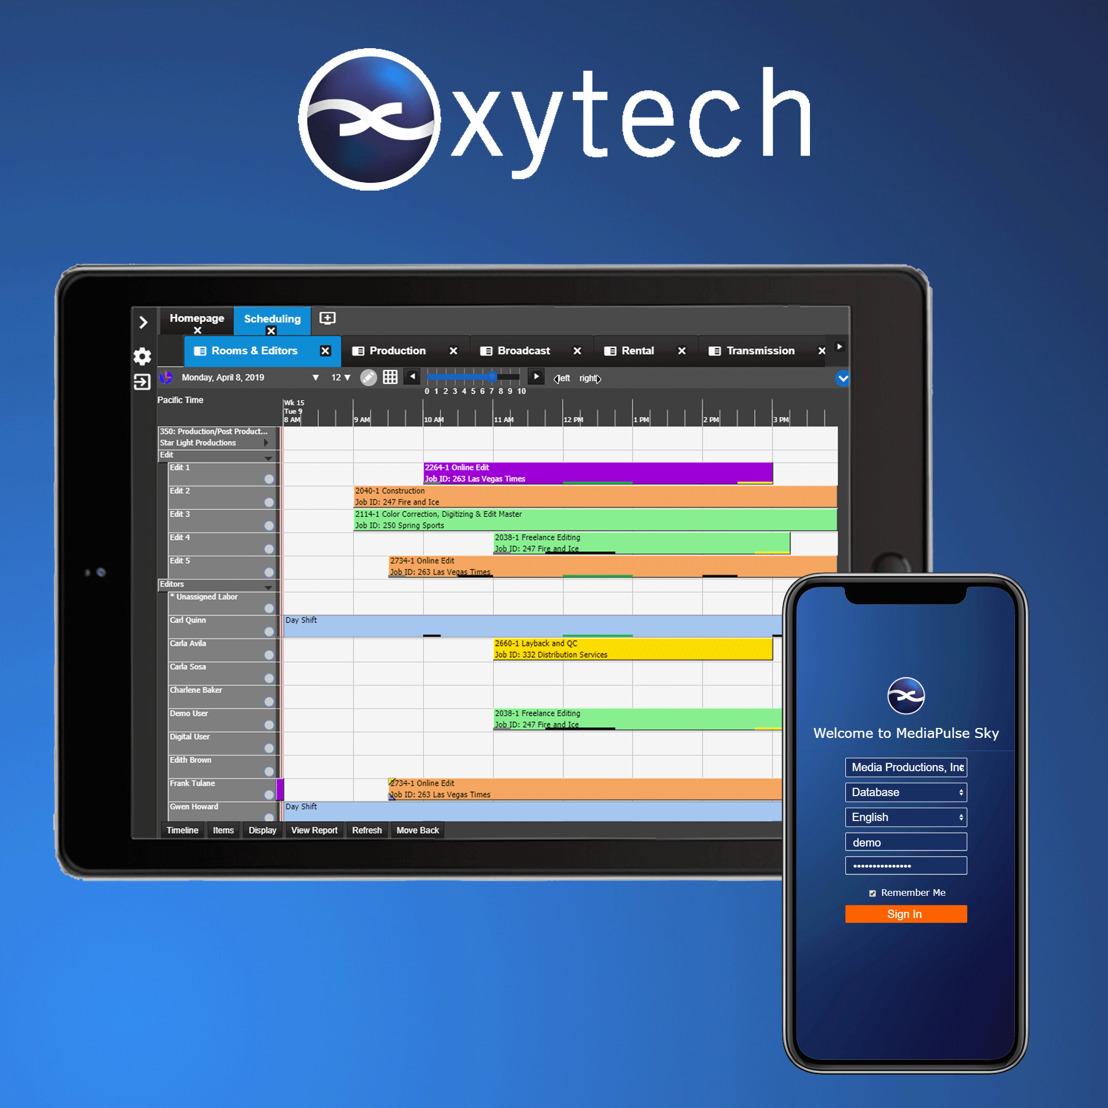 IBC 2019: Xytech Debuts New User Interface and Upgrades to MediaPulse, Providing Targeted Functionality to All Users